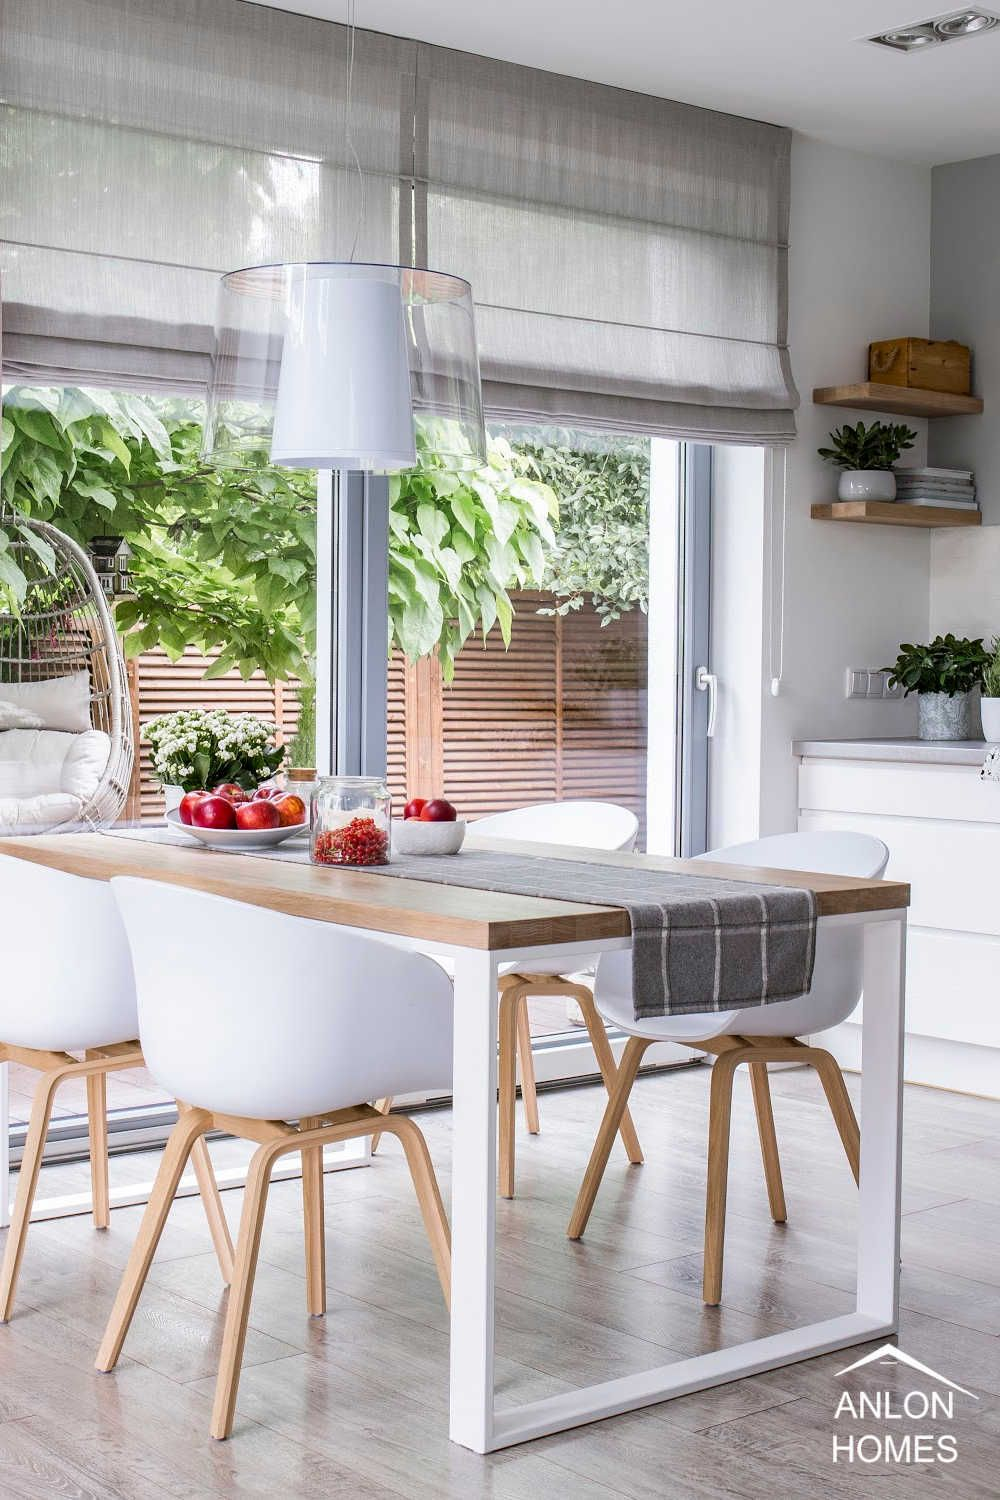 Roman Shades On Trend For 2021 In 2021 Kitchen Window Coverings Modern Window Treatments Modern Dining Room